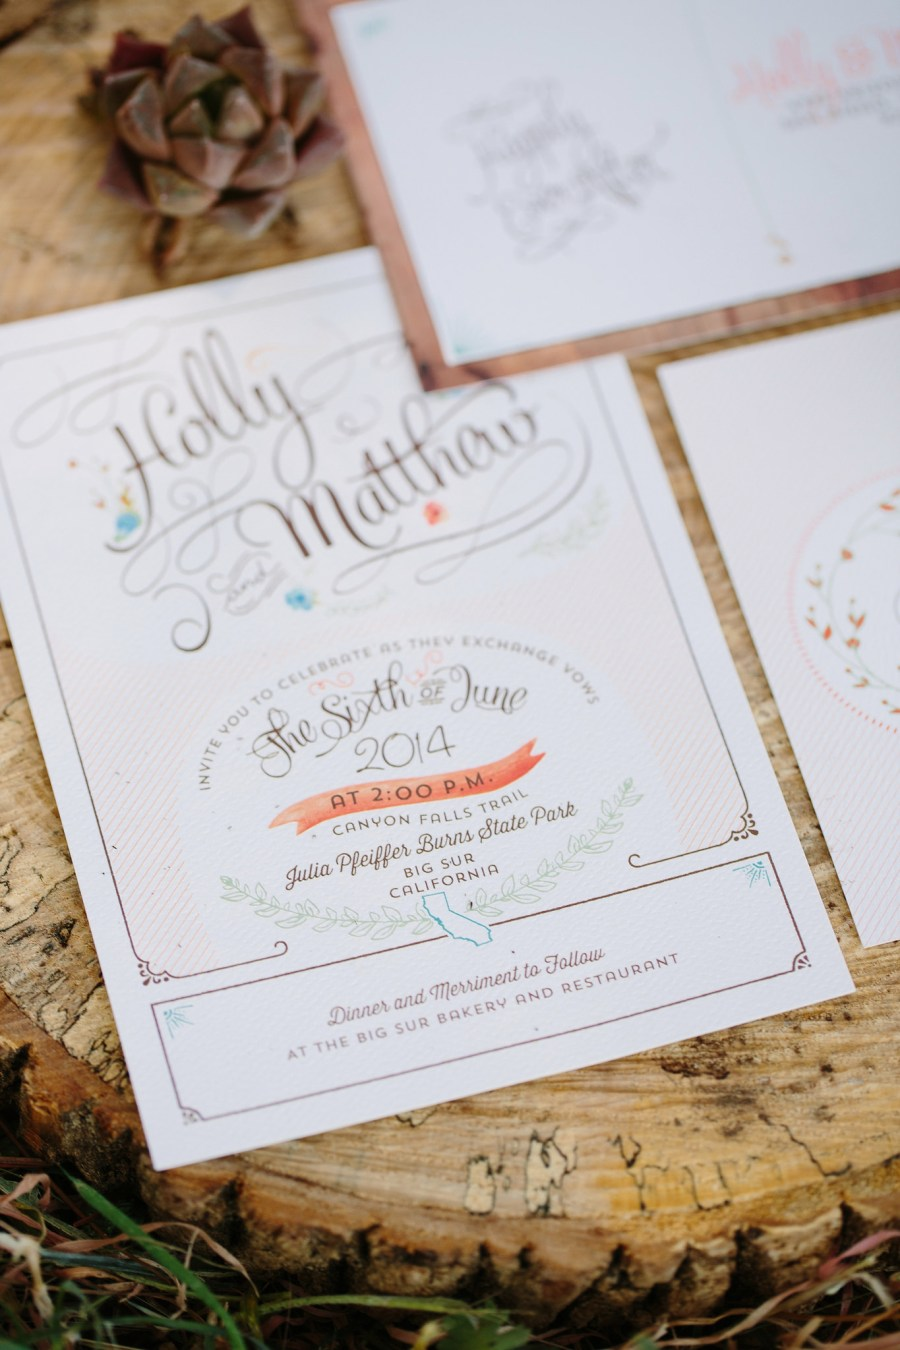 Wedding Invitations With Rsvp 5 Tips For Getting People To Rsvp To Your Wedding Invitation A